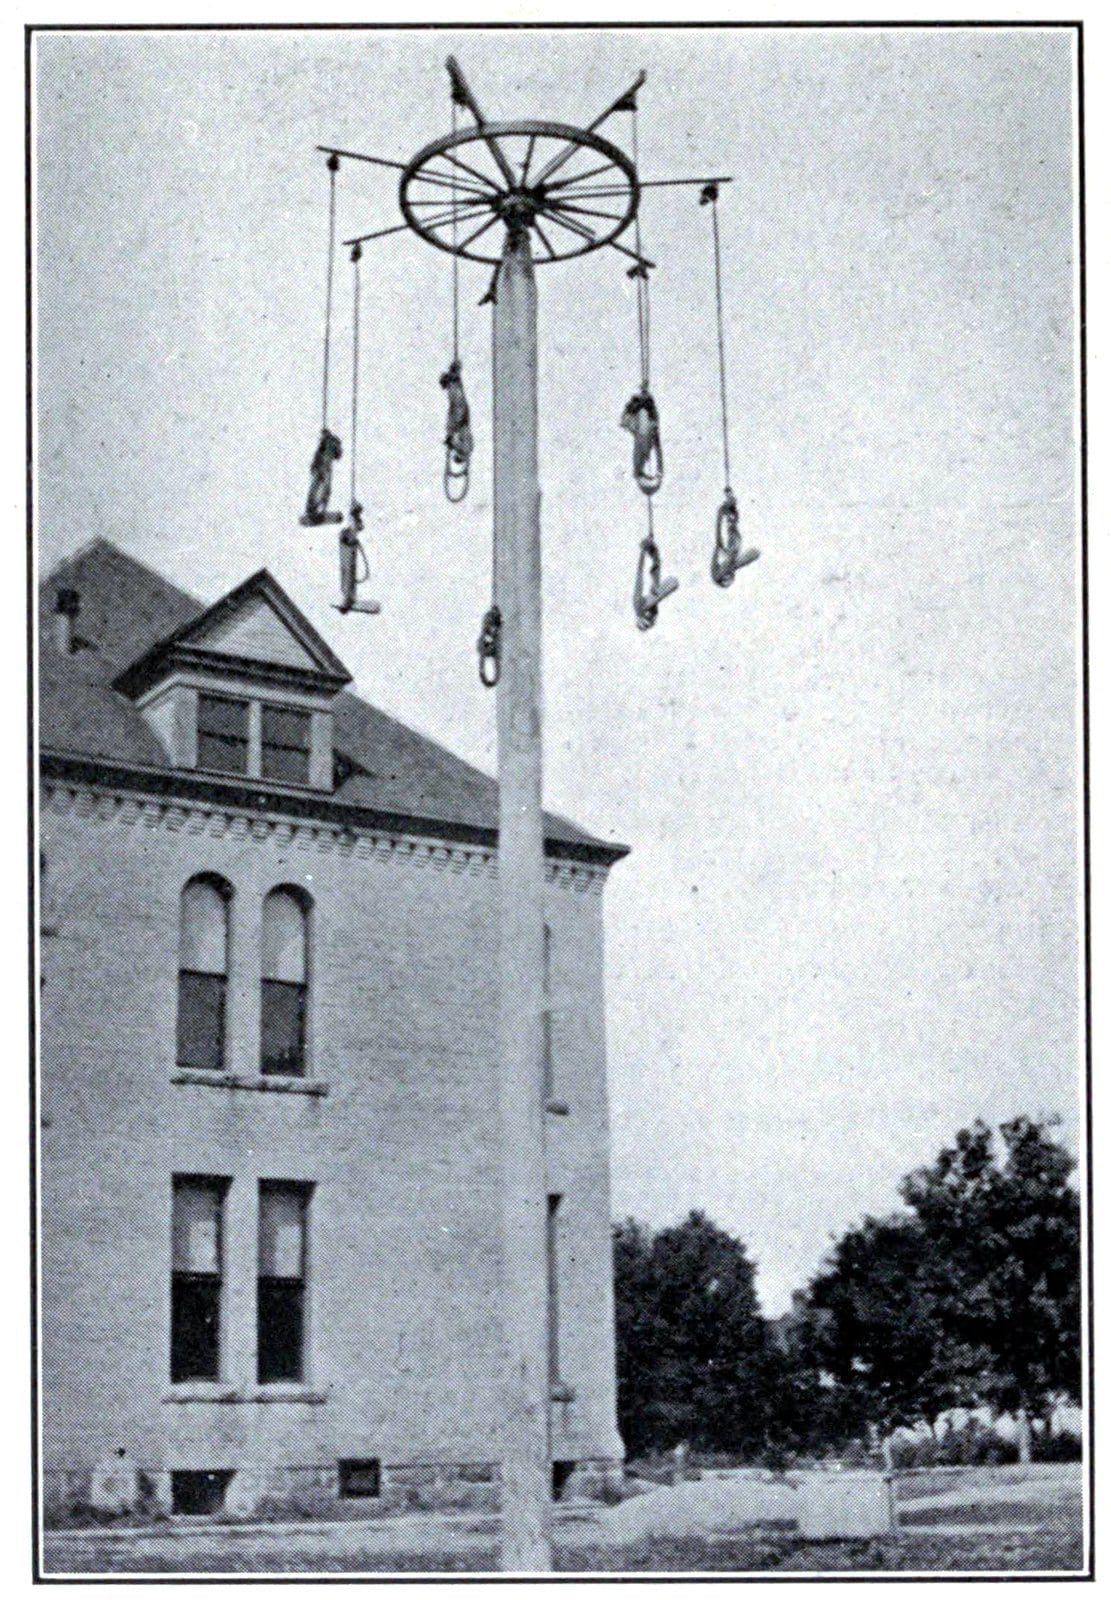 Giant stride playground toy - Super-tall homemade version (1918)